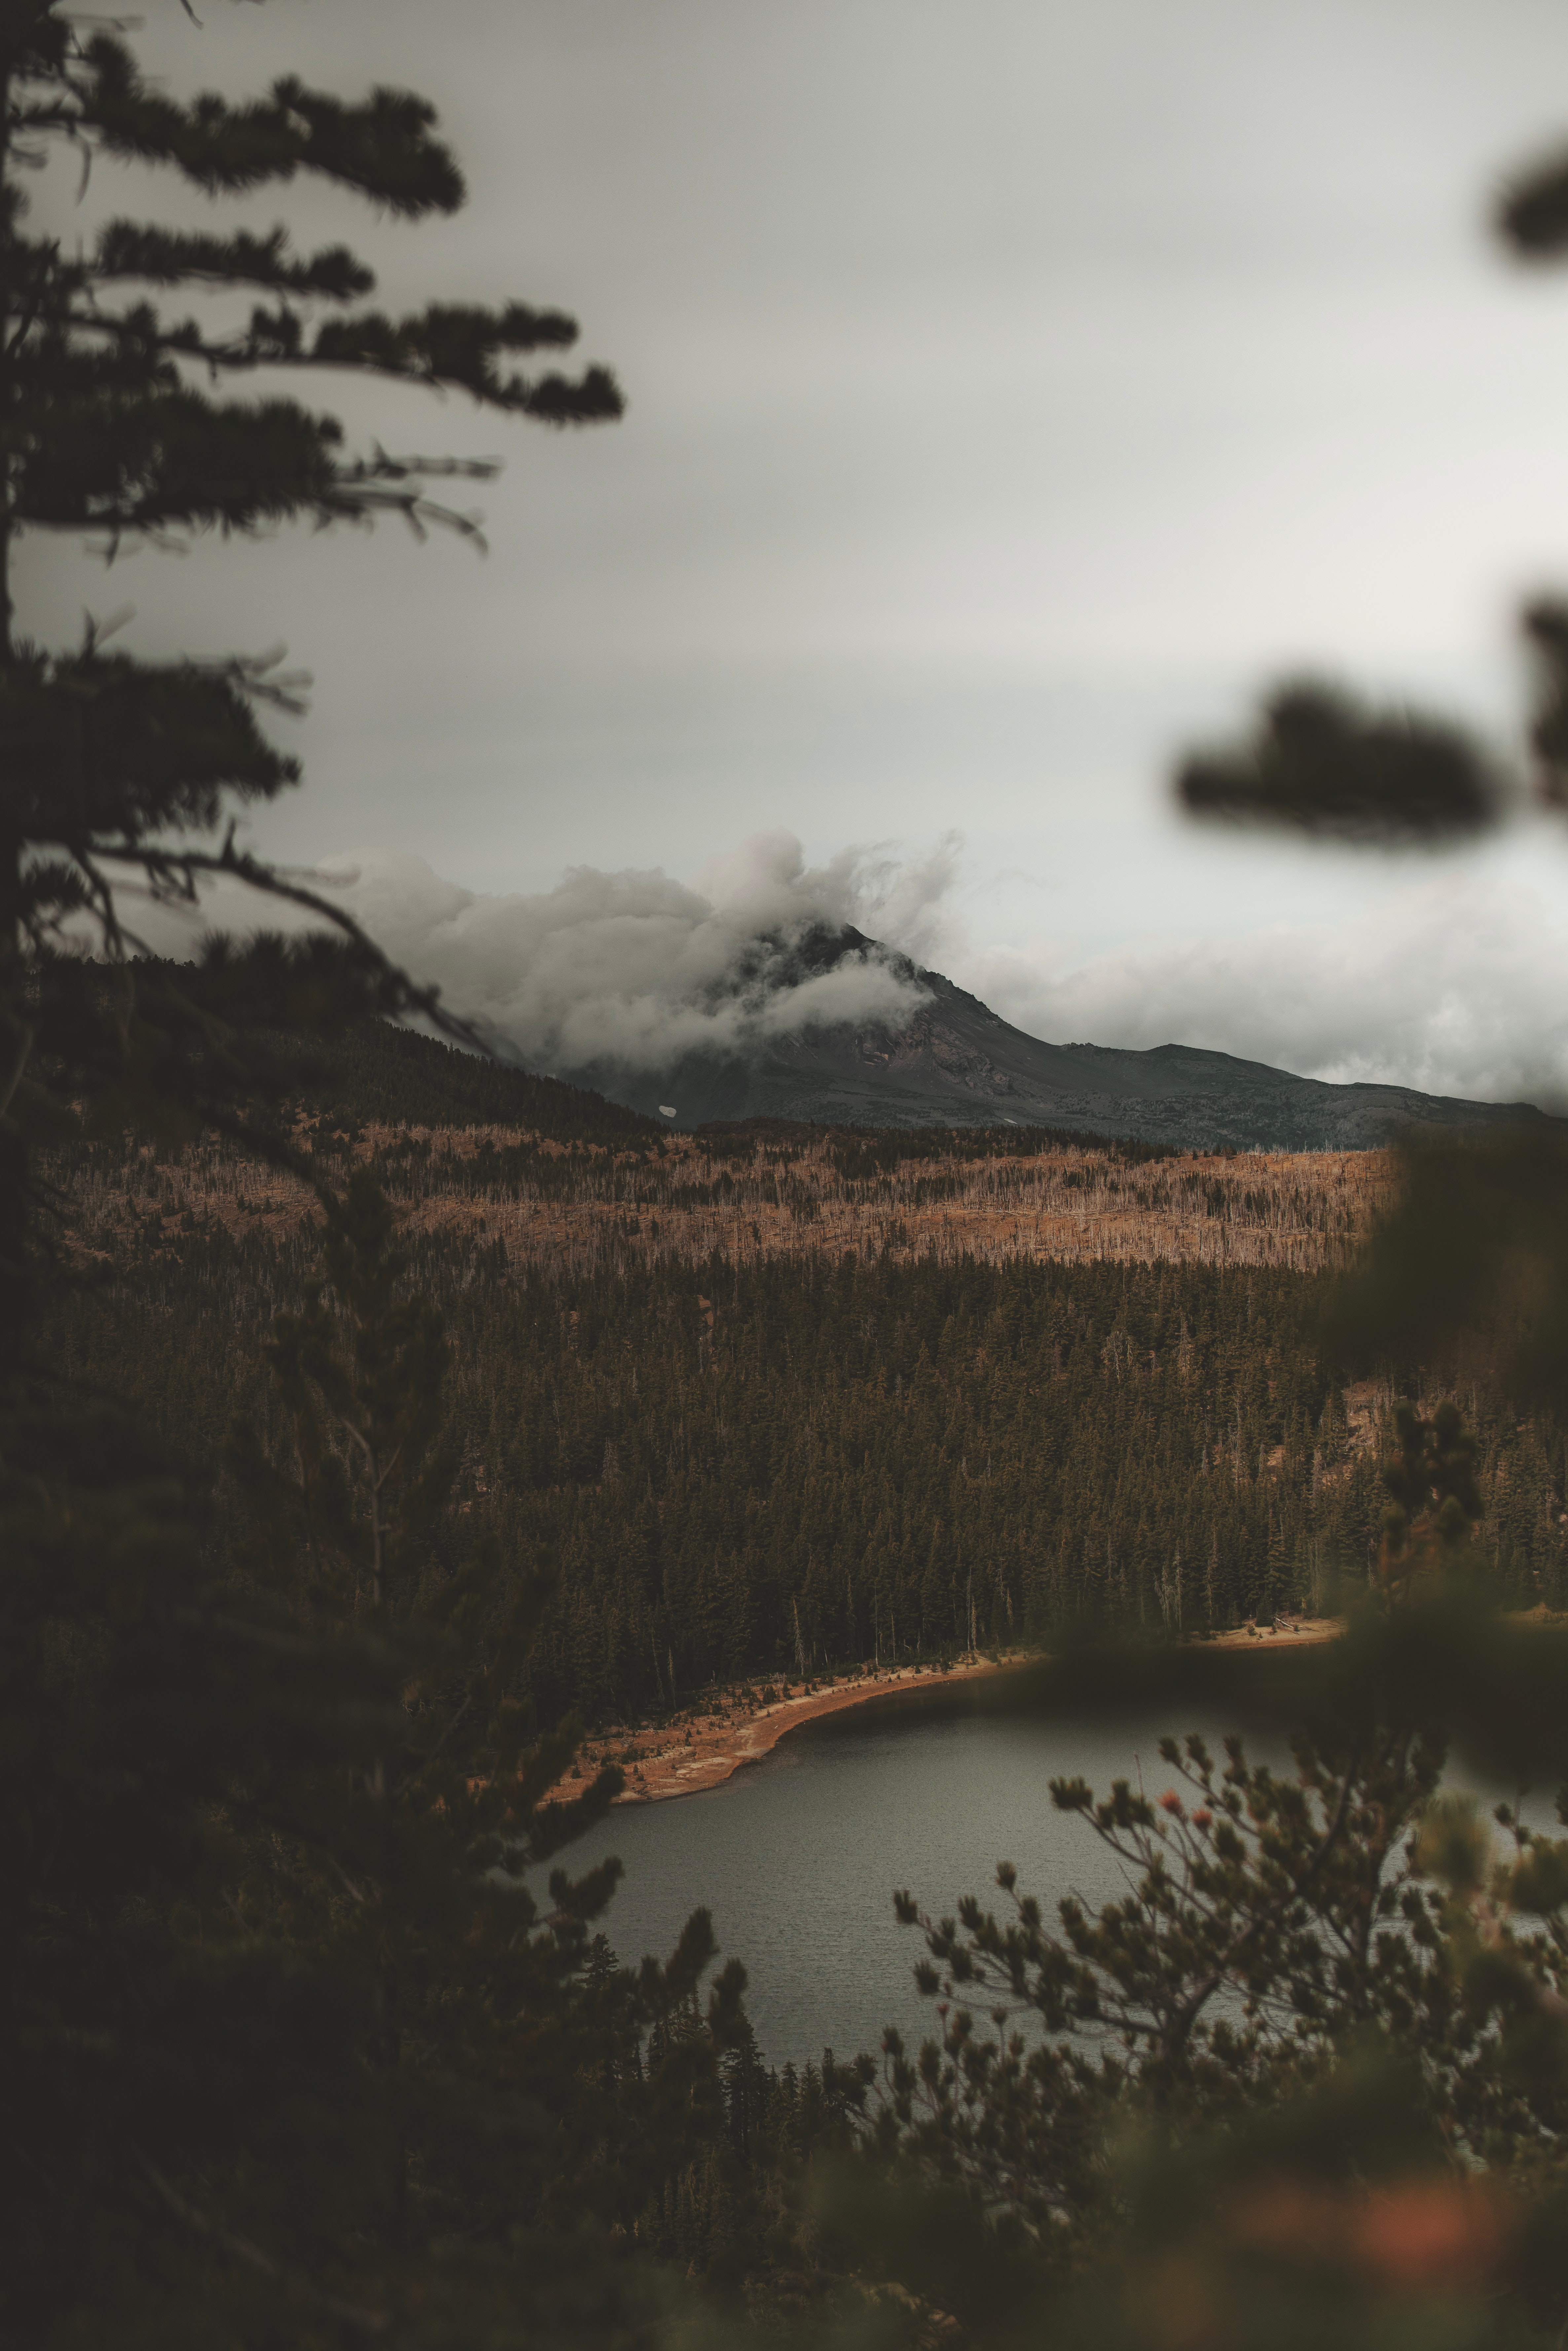 landscape photo of mountain and trees